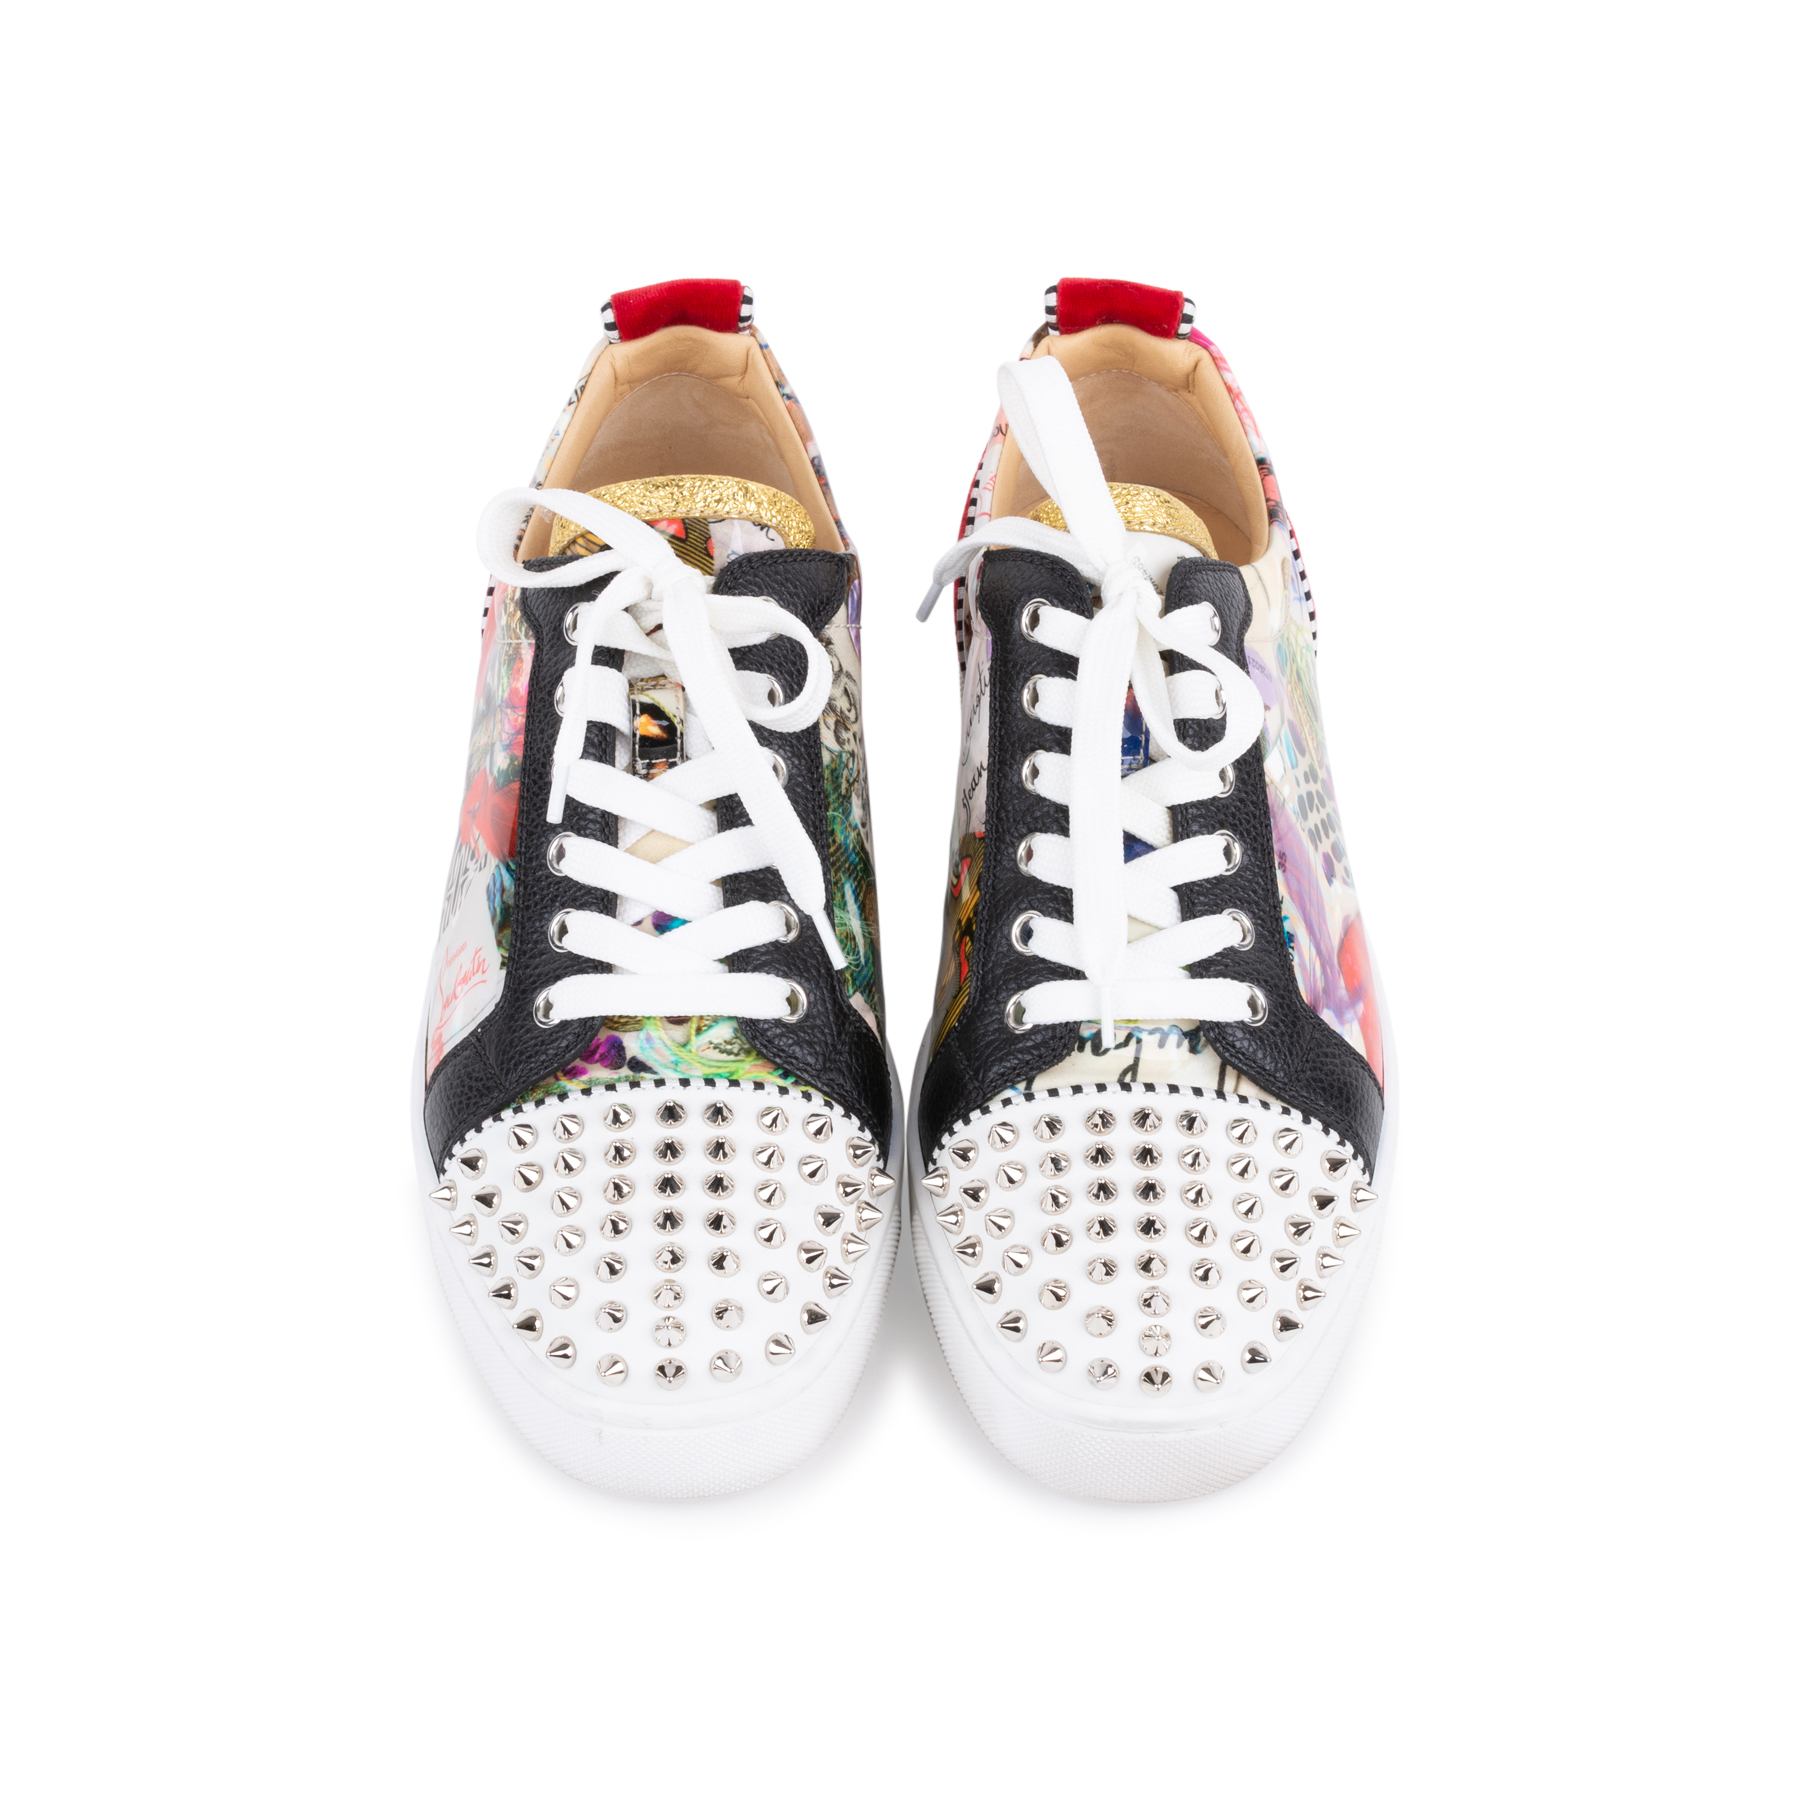 8fd37e34e5b Authentic Second Hand Christian Louboutin Louis Junior Spiked Printed  Patent and Velvet Sneakers (PSS-601-00002)